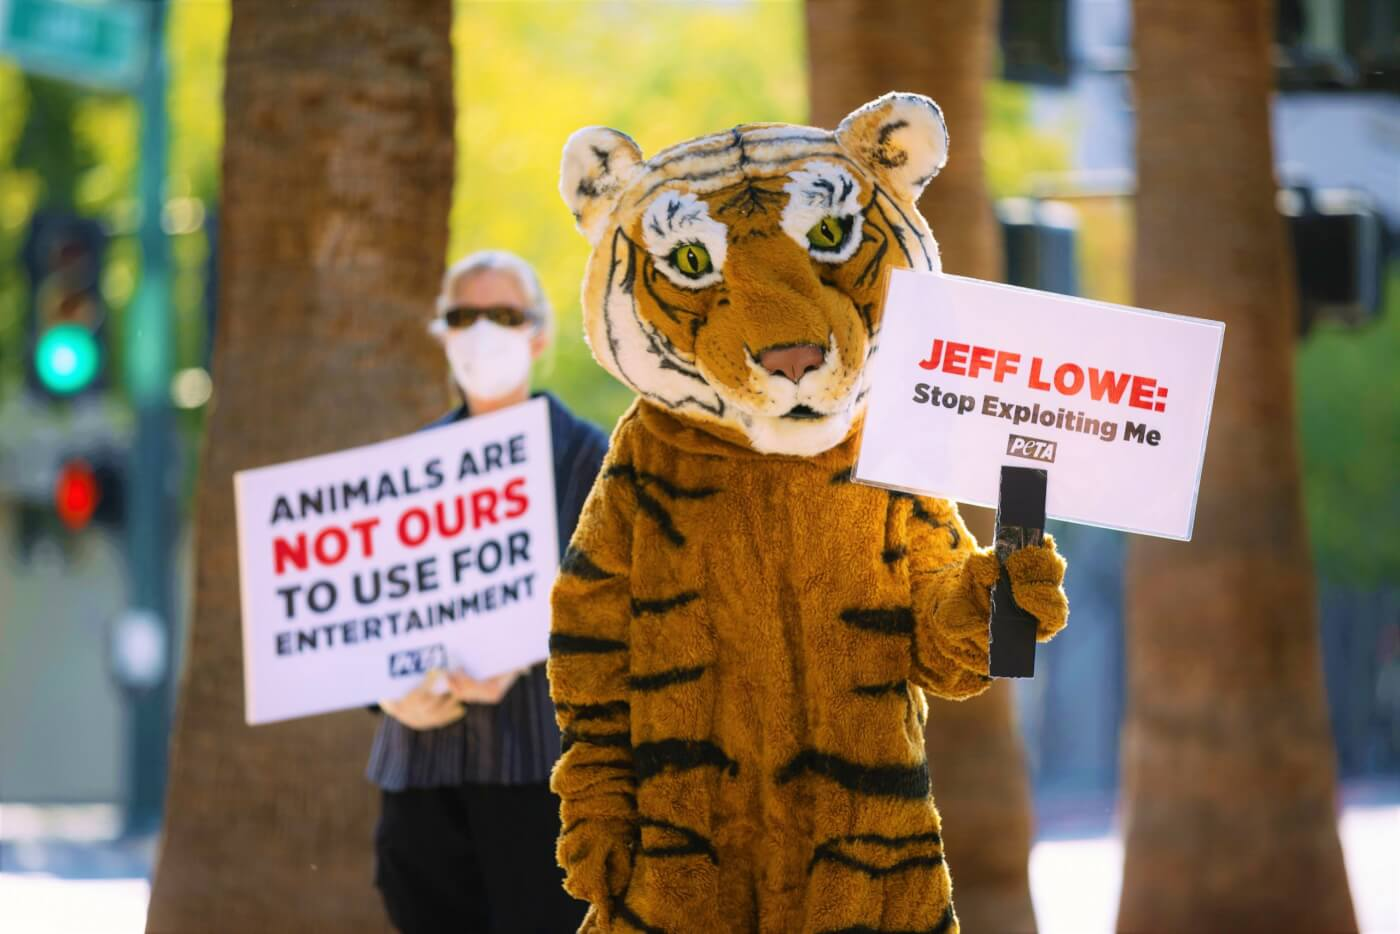 U.S. Department of Justice Seizes Big Cats from Lauren and Jeff Lowe